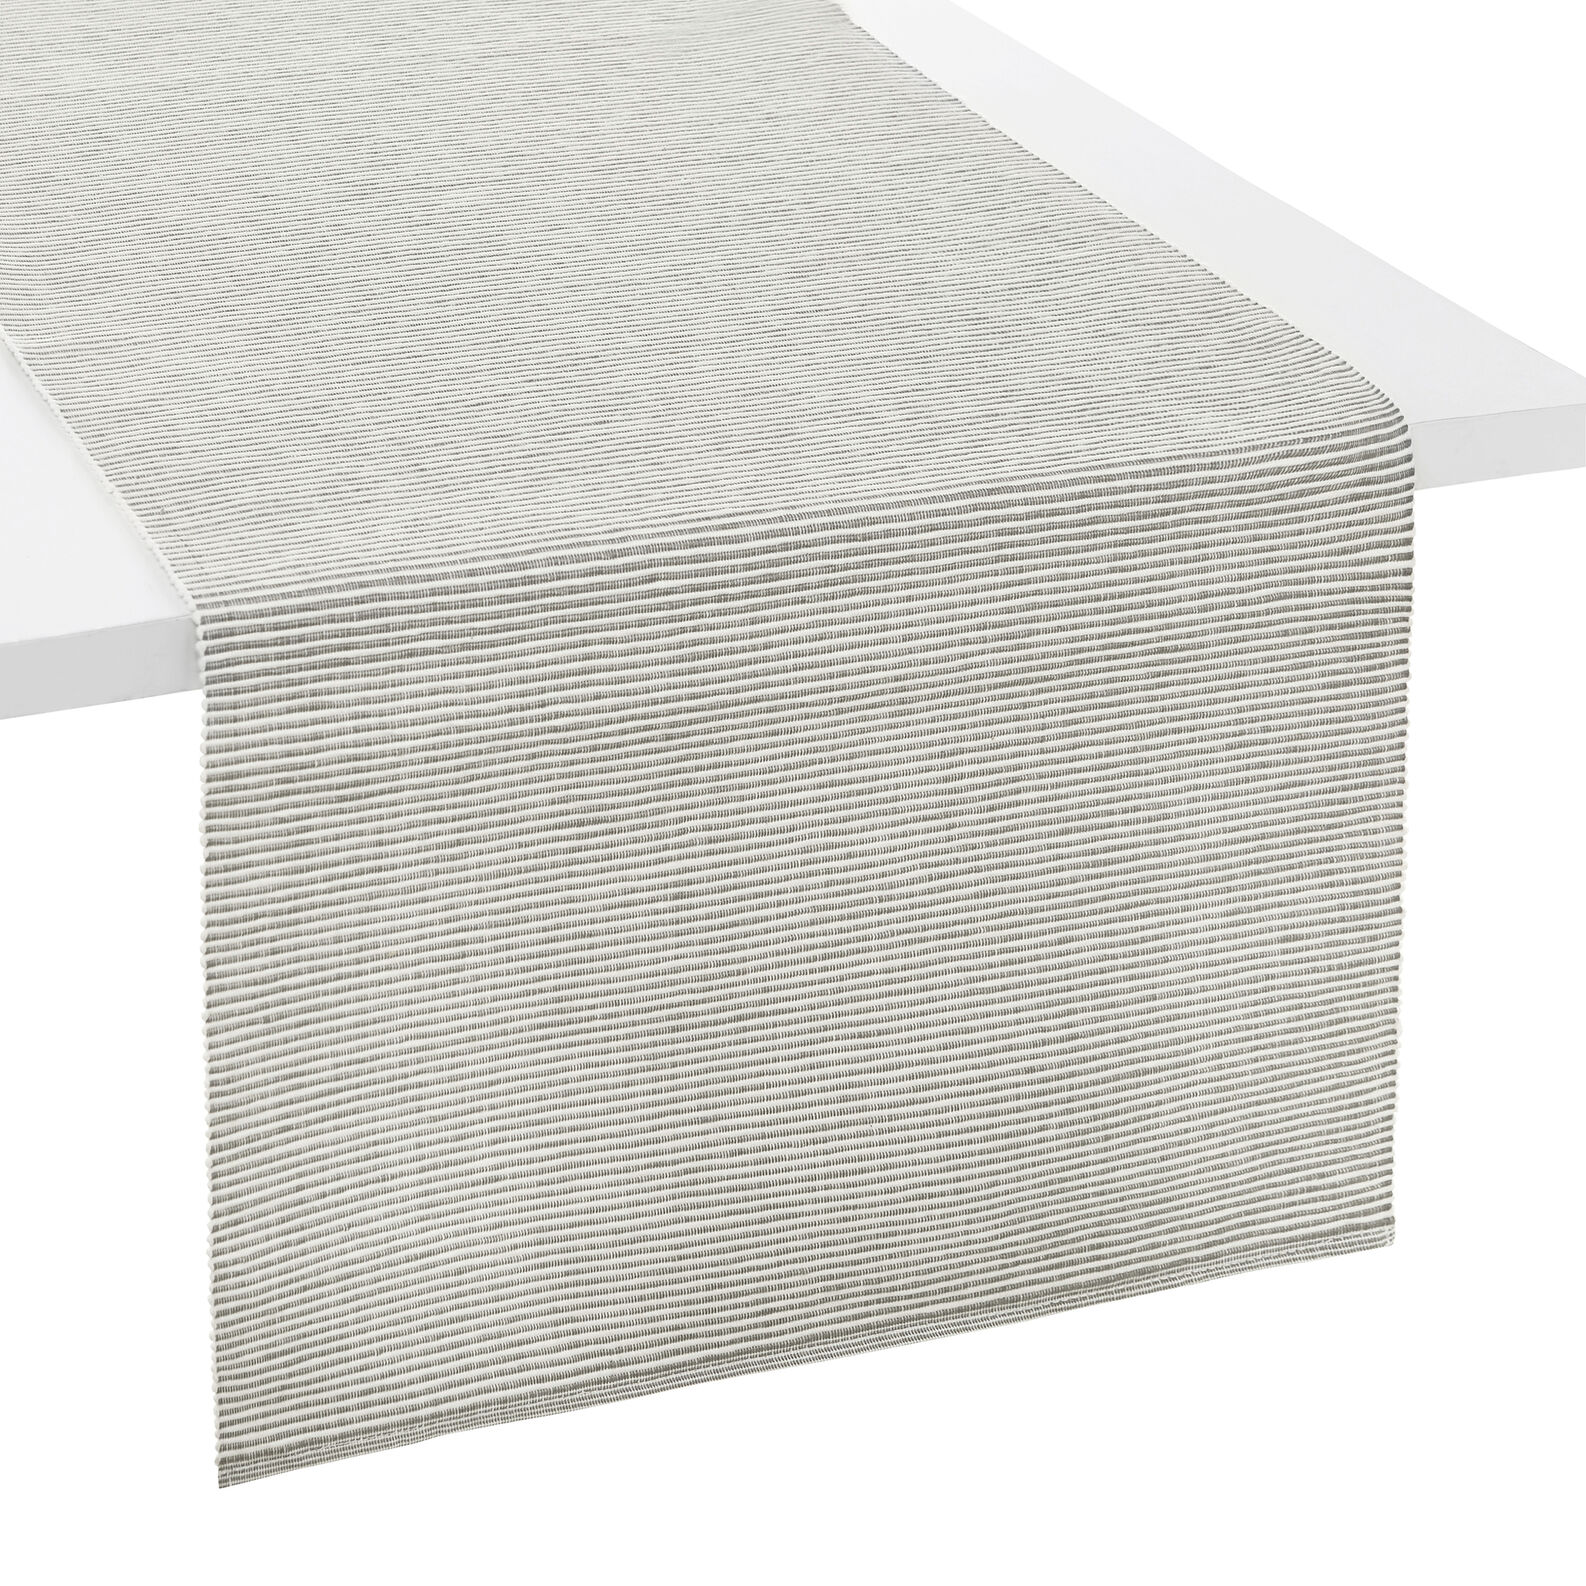 Striped and ribbed cotton table runner